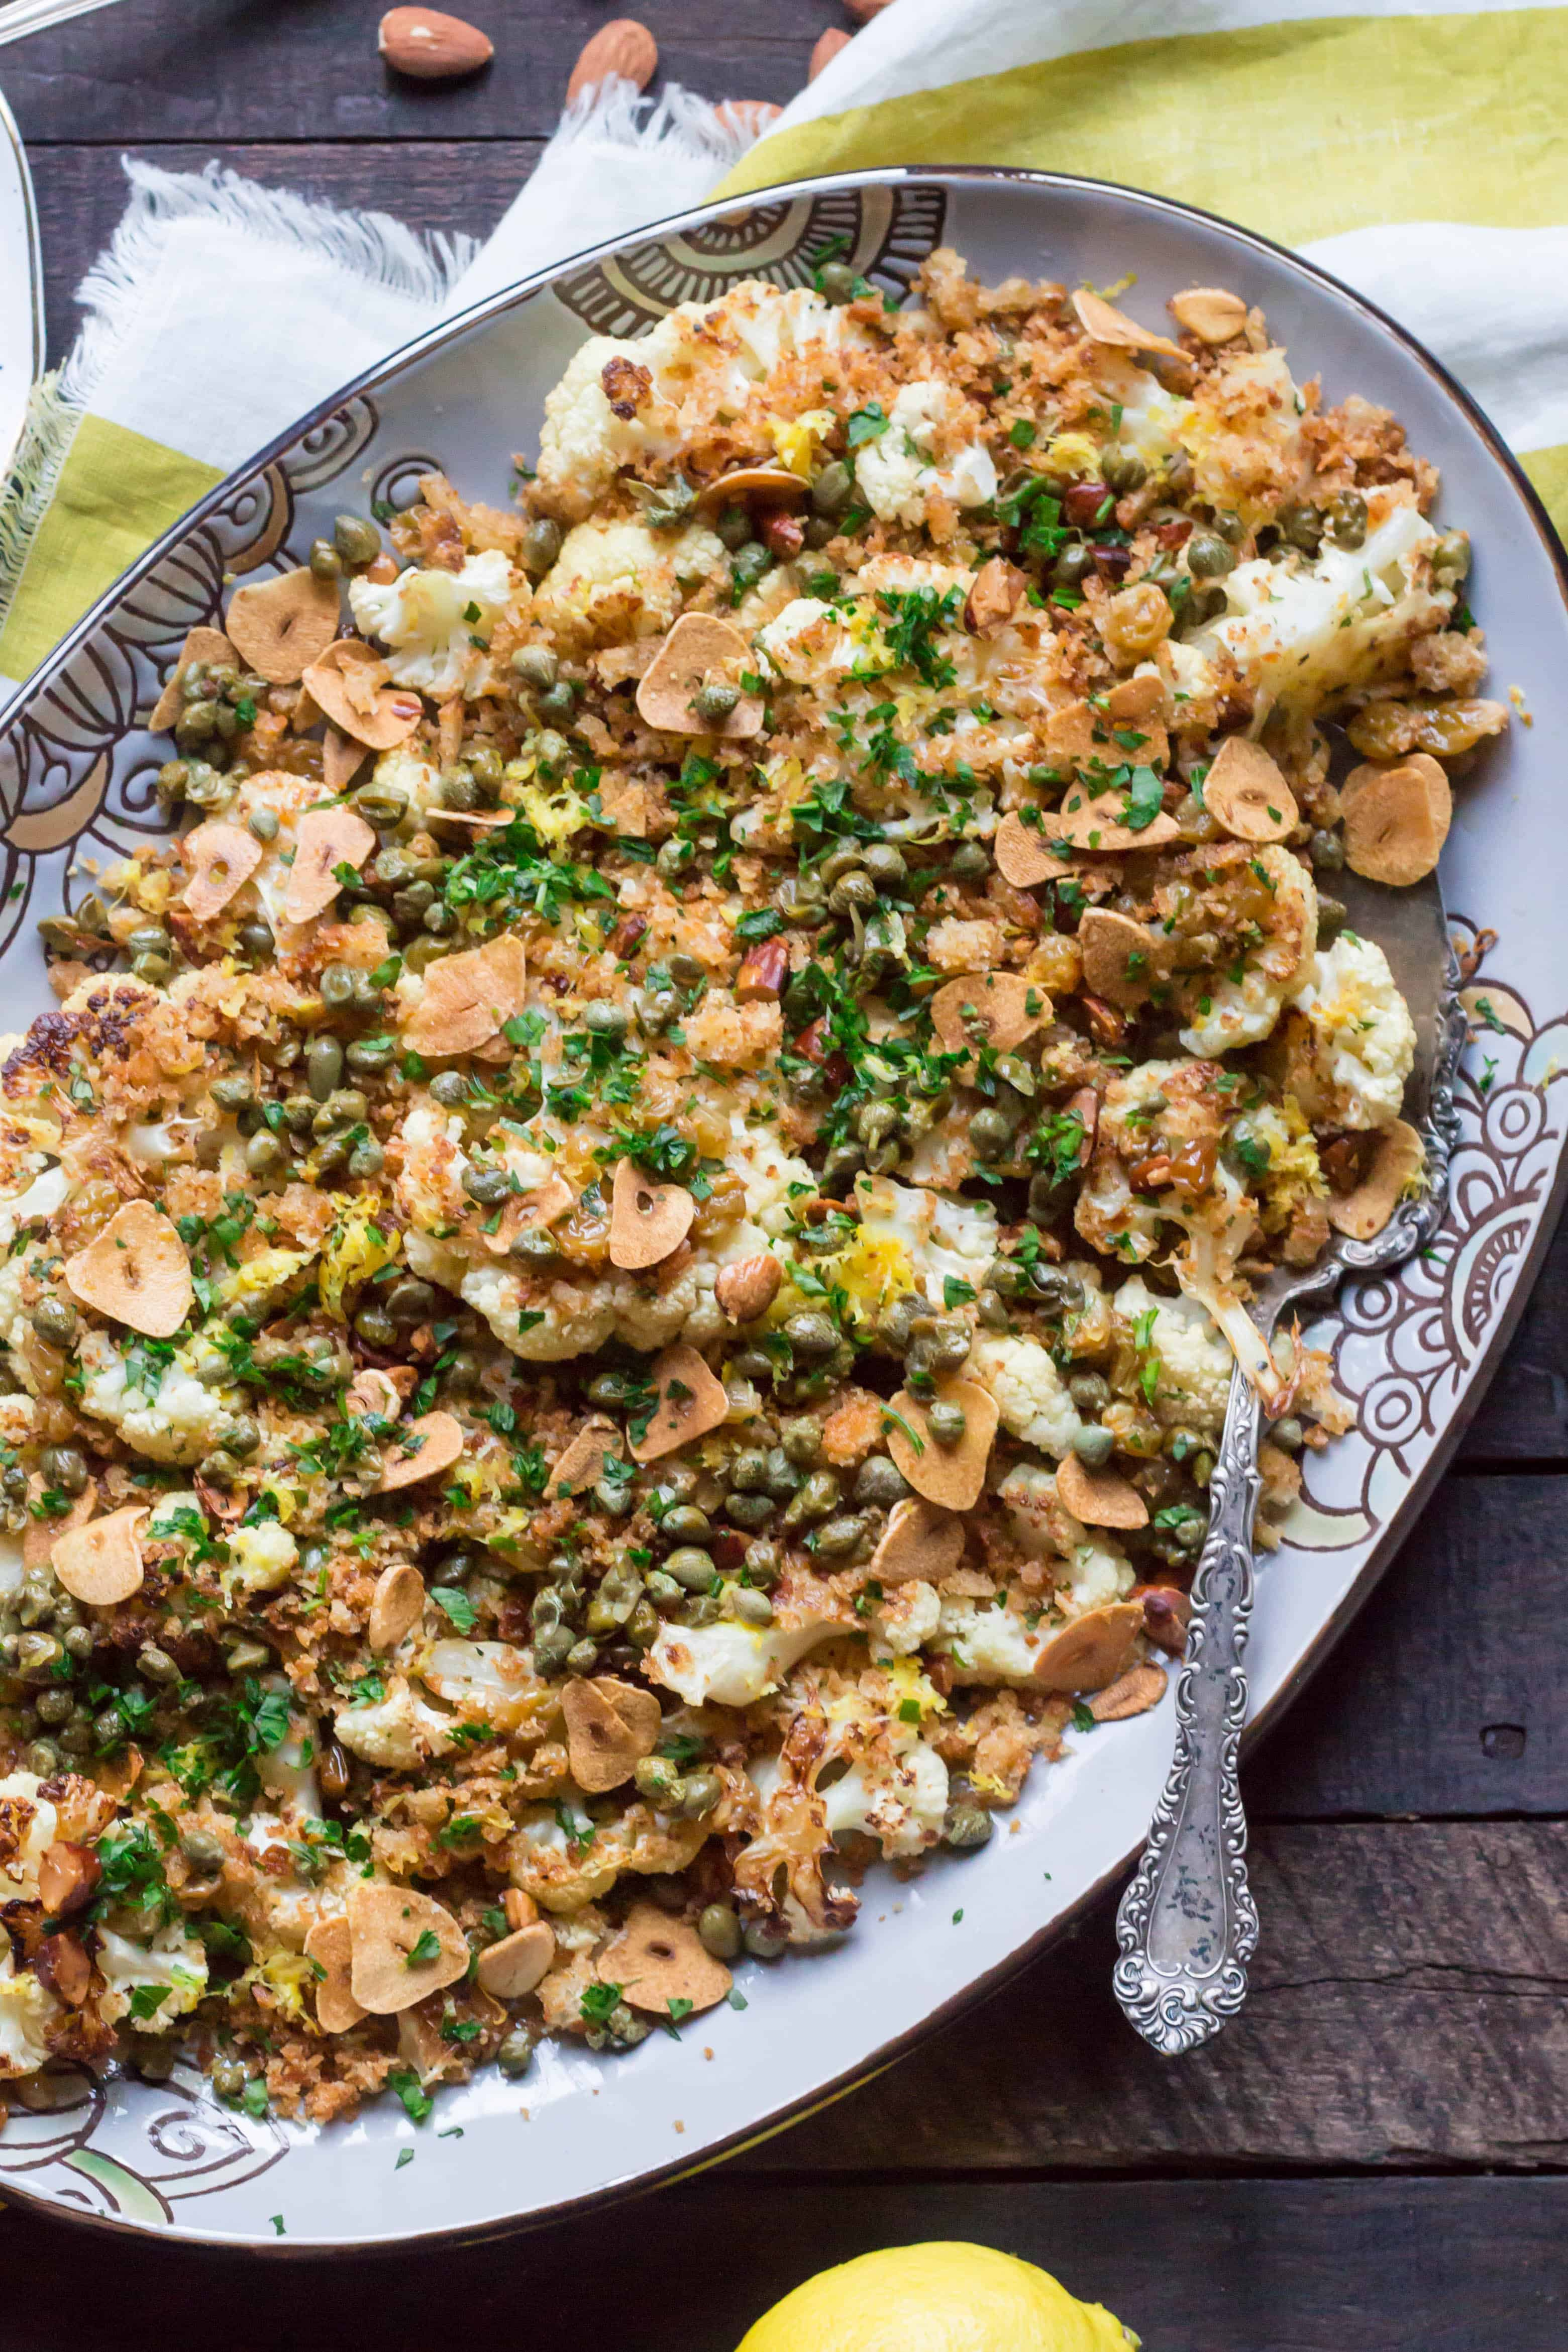 Oval serving platter of roasted cauliflower casserole.